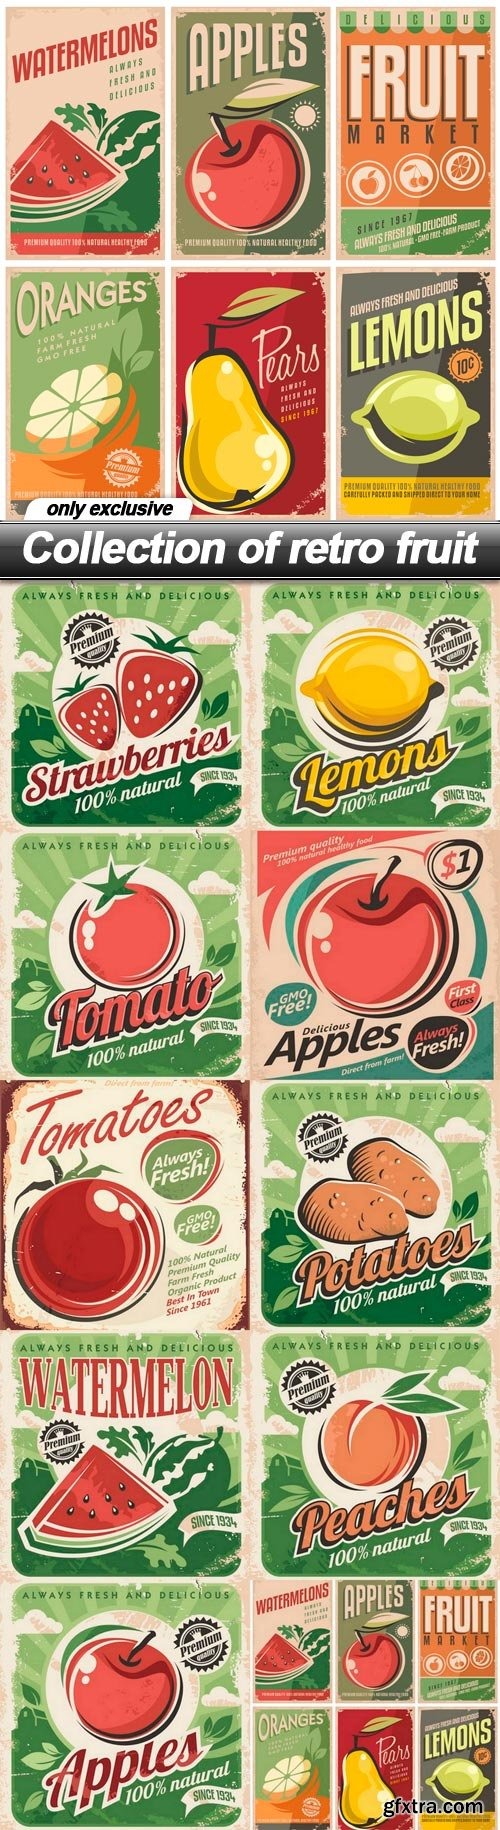 Collection of retro fruit - 10 EPS